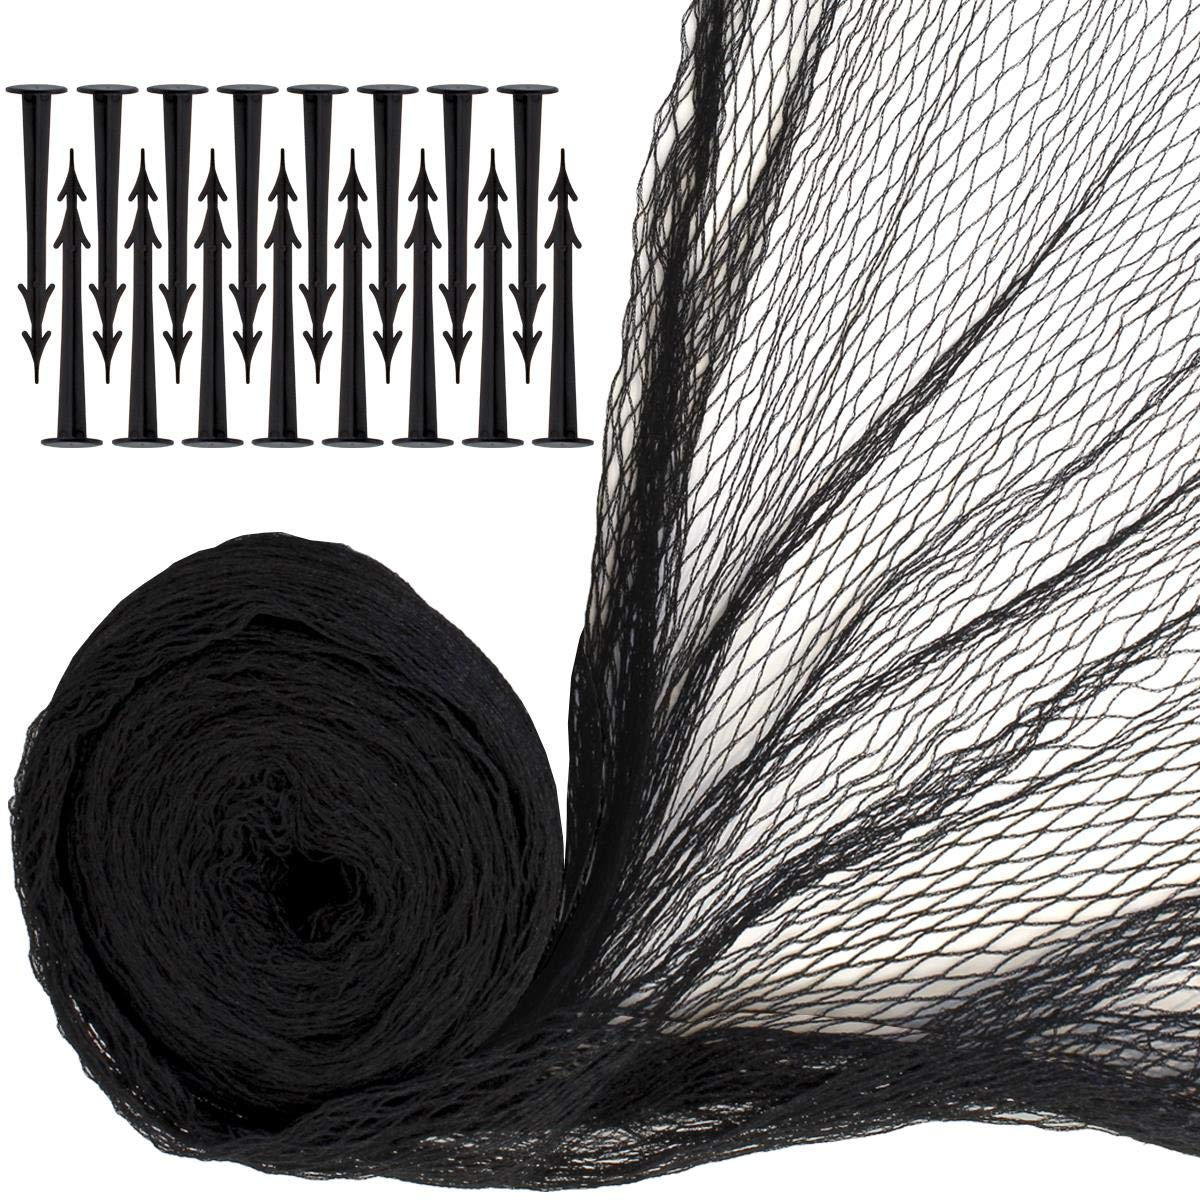 iGadgitz Home U7087 Fish Pond Netting with Securing Pegs - Black - 13ft x 39.4ft(426ft²) 16 pegs by iGadgitz Home